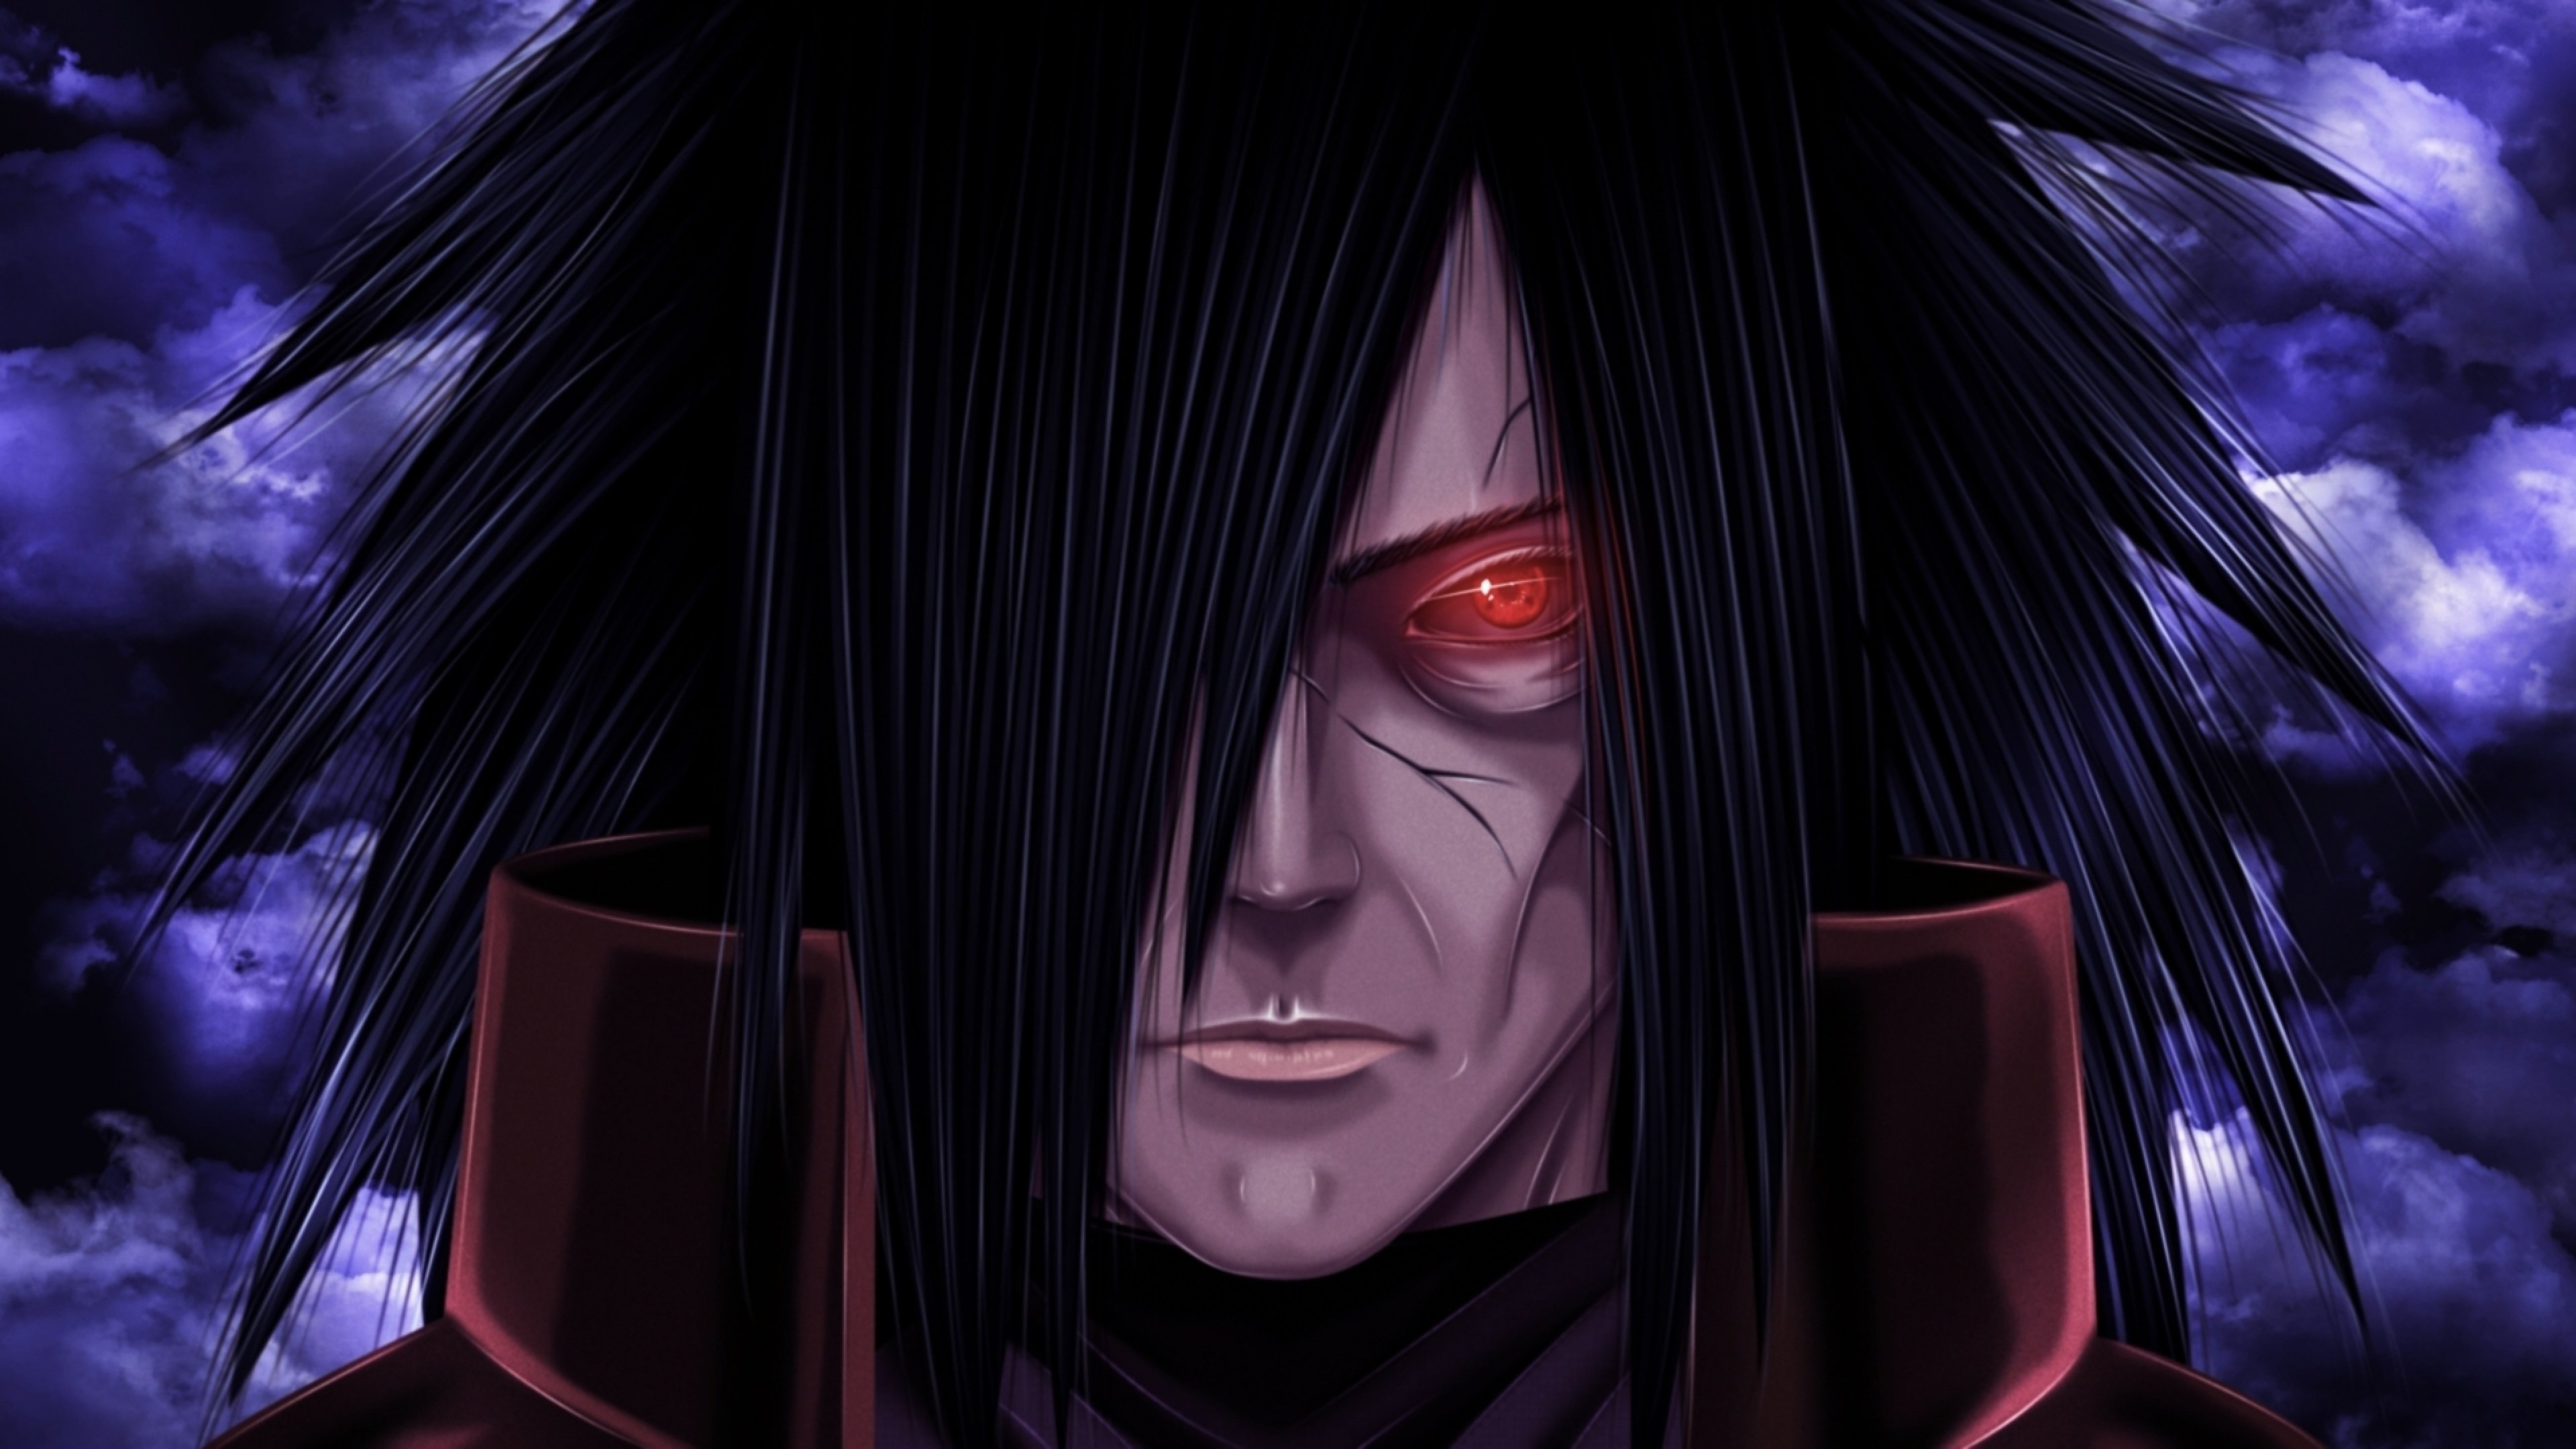 madara uchiha wallpaper ultra hd 4k 395780